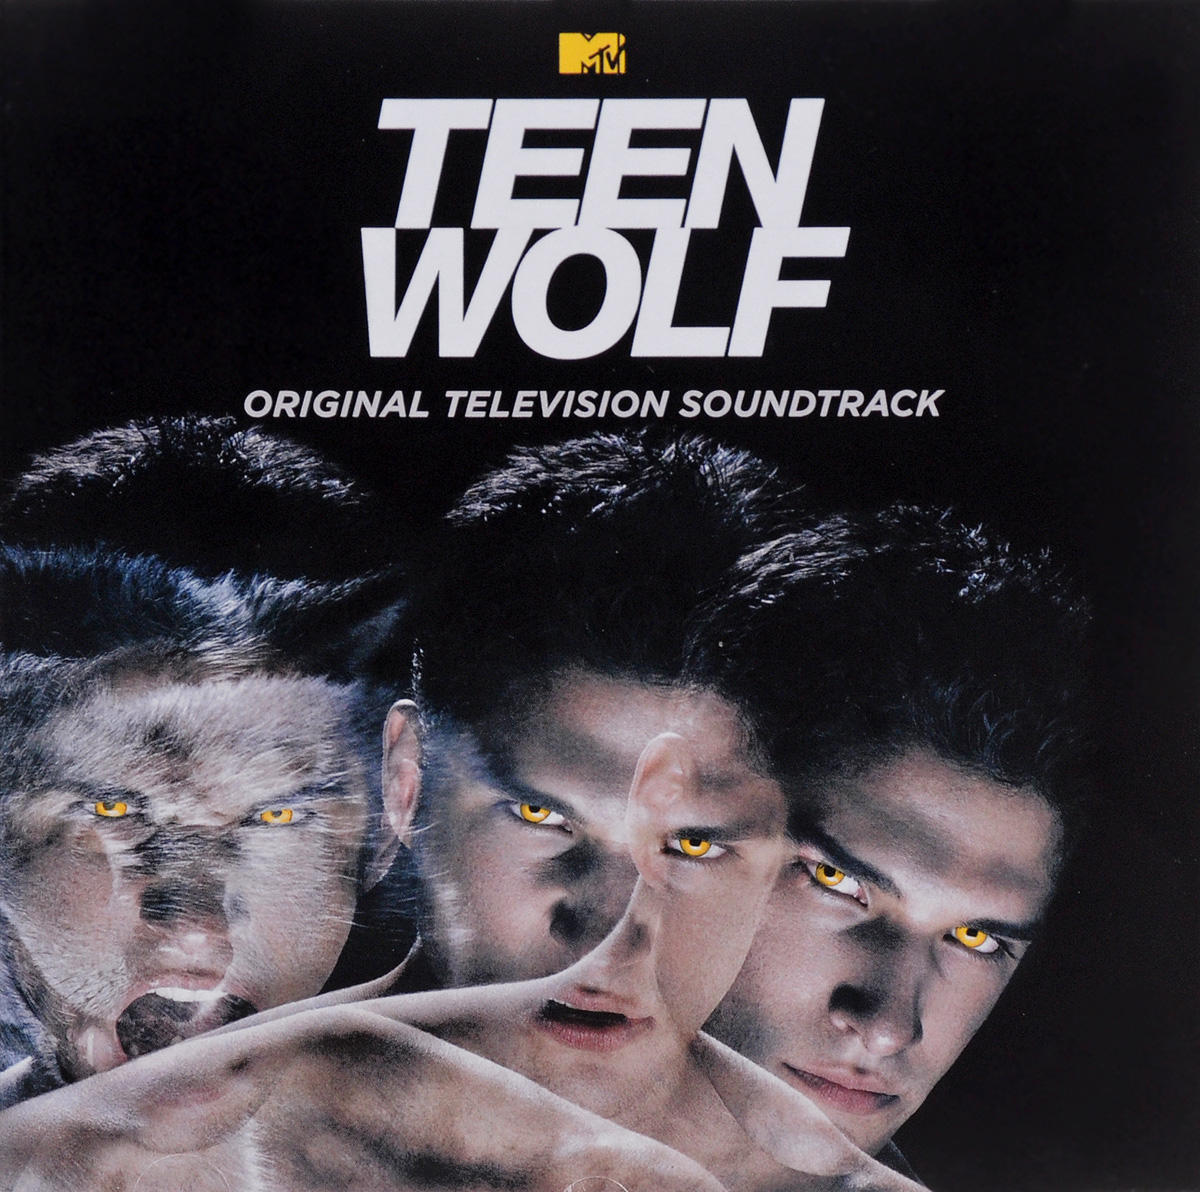 Teen Wolf. Original Television Soundtrack